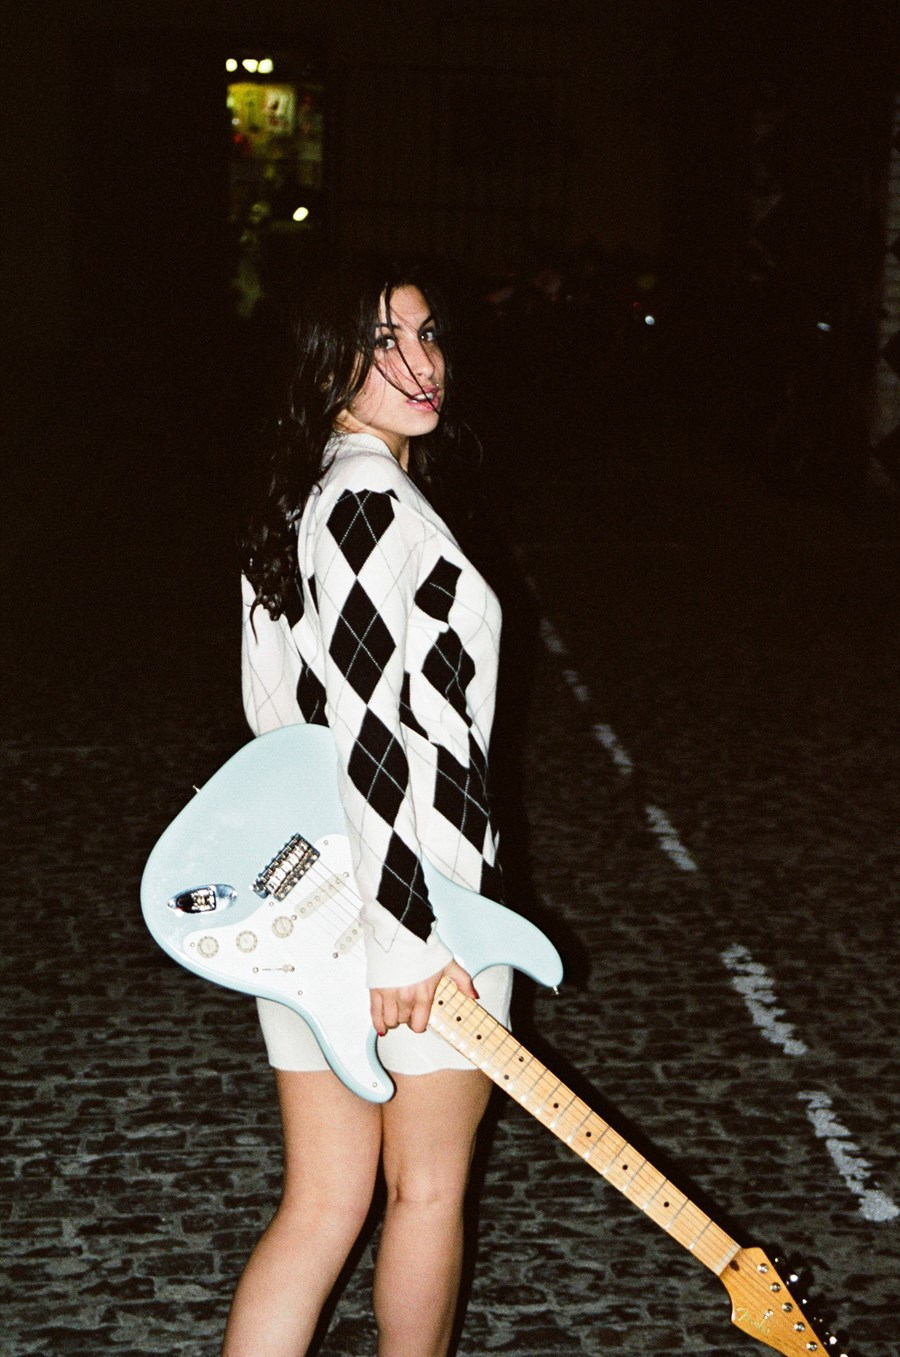 foto-inedite-amy-winehouse-charles-moriarty-09